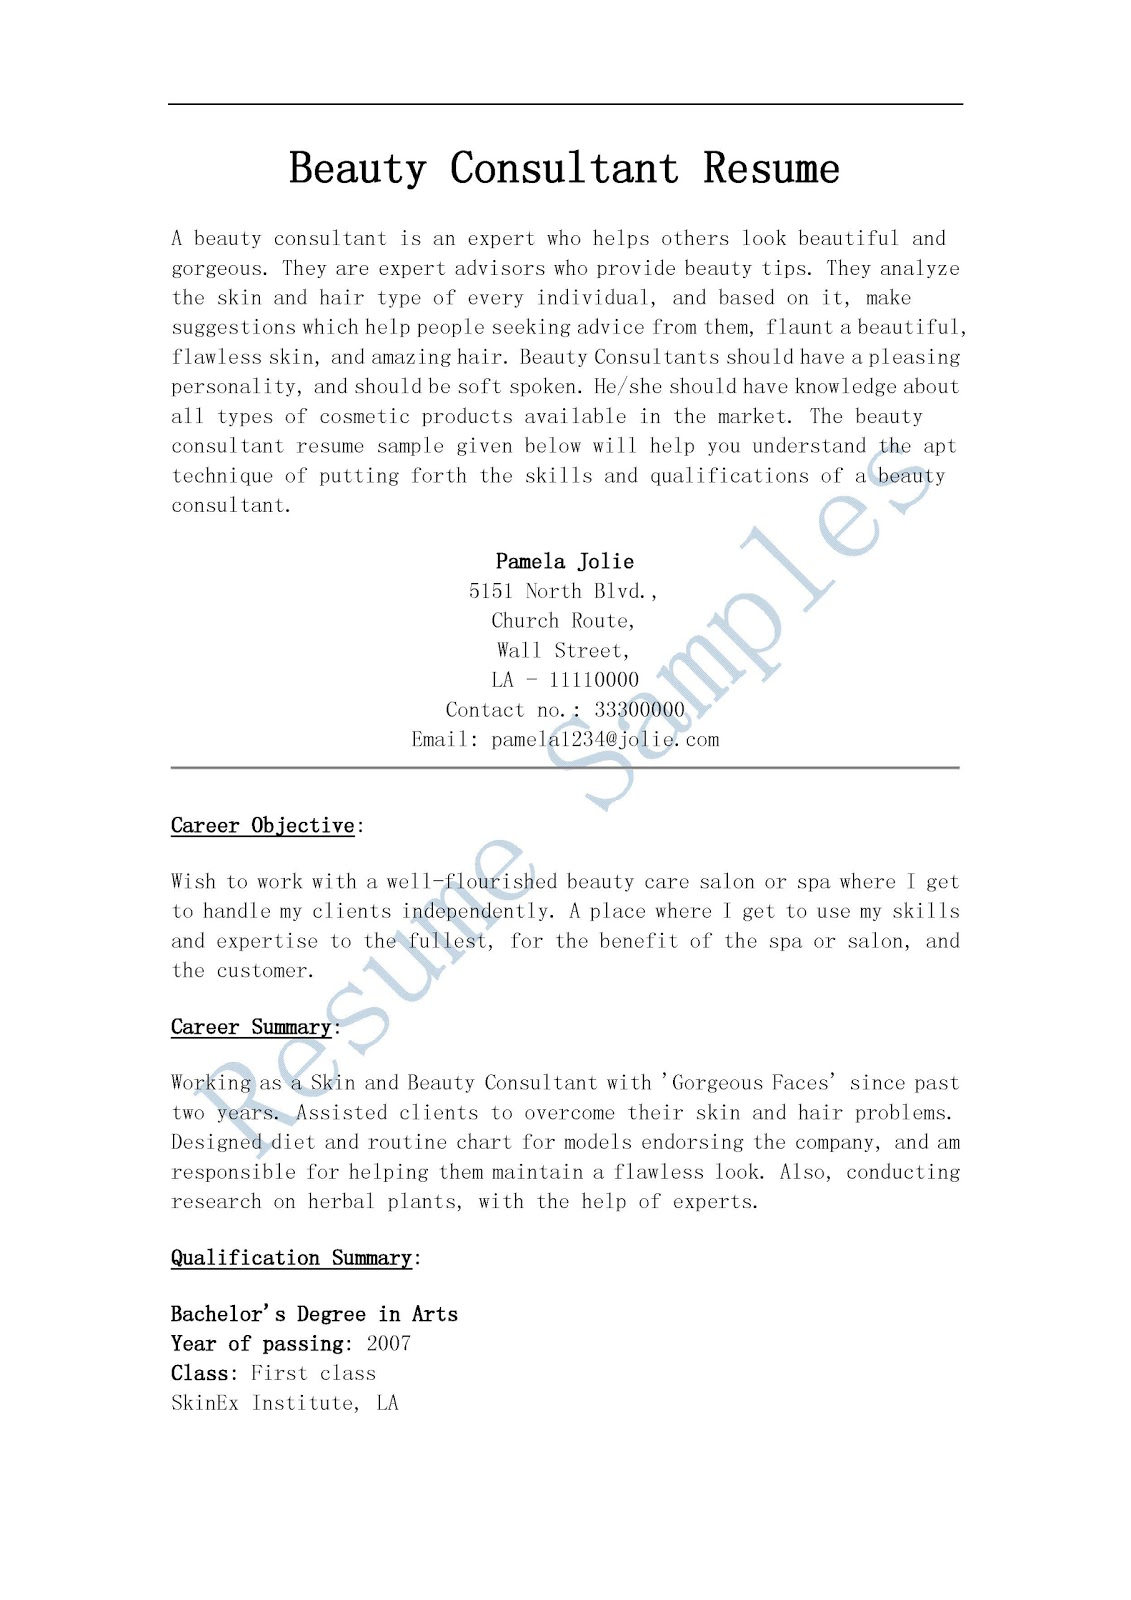 spa consultant resume september tanning sample beauty executive chef chick fil entry Resume Tanning Consultant Resume Sample